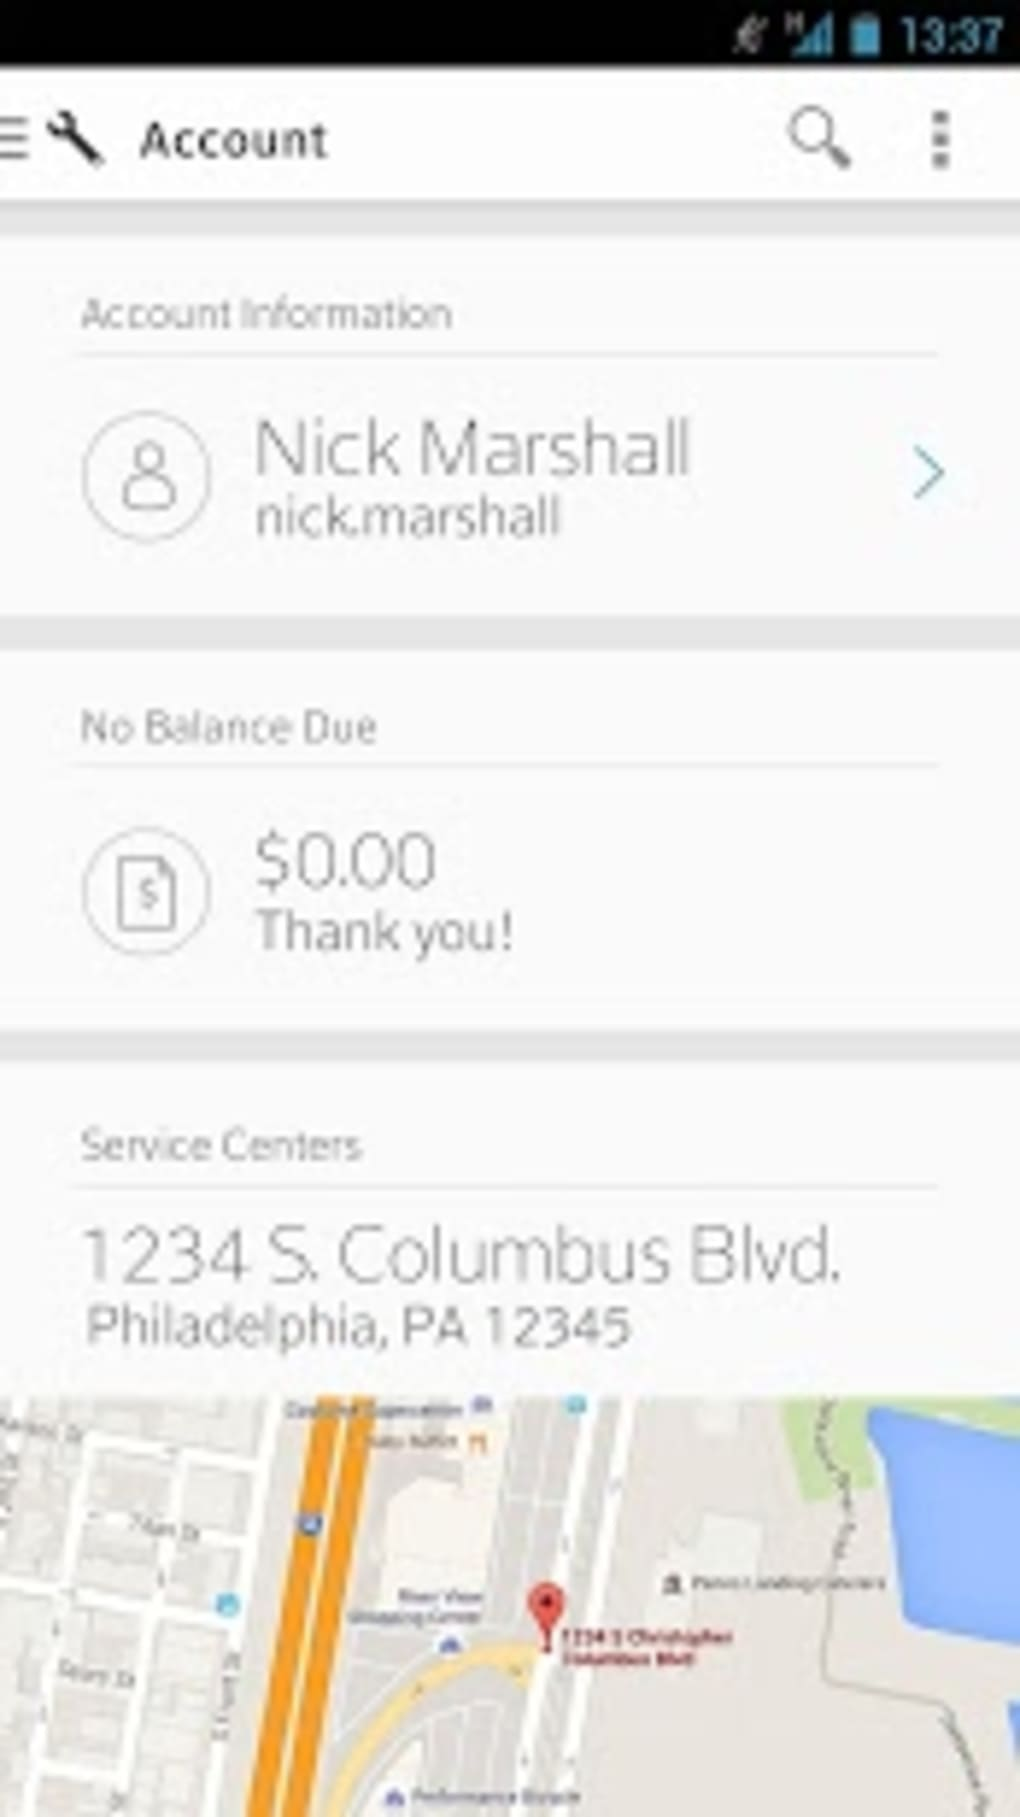 XFINITY My Account for Android - Download